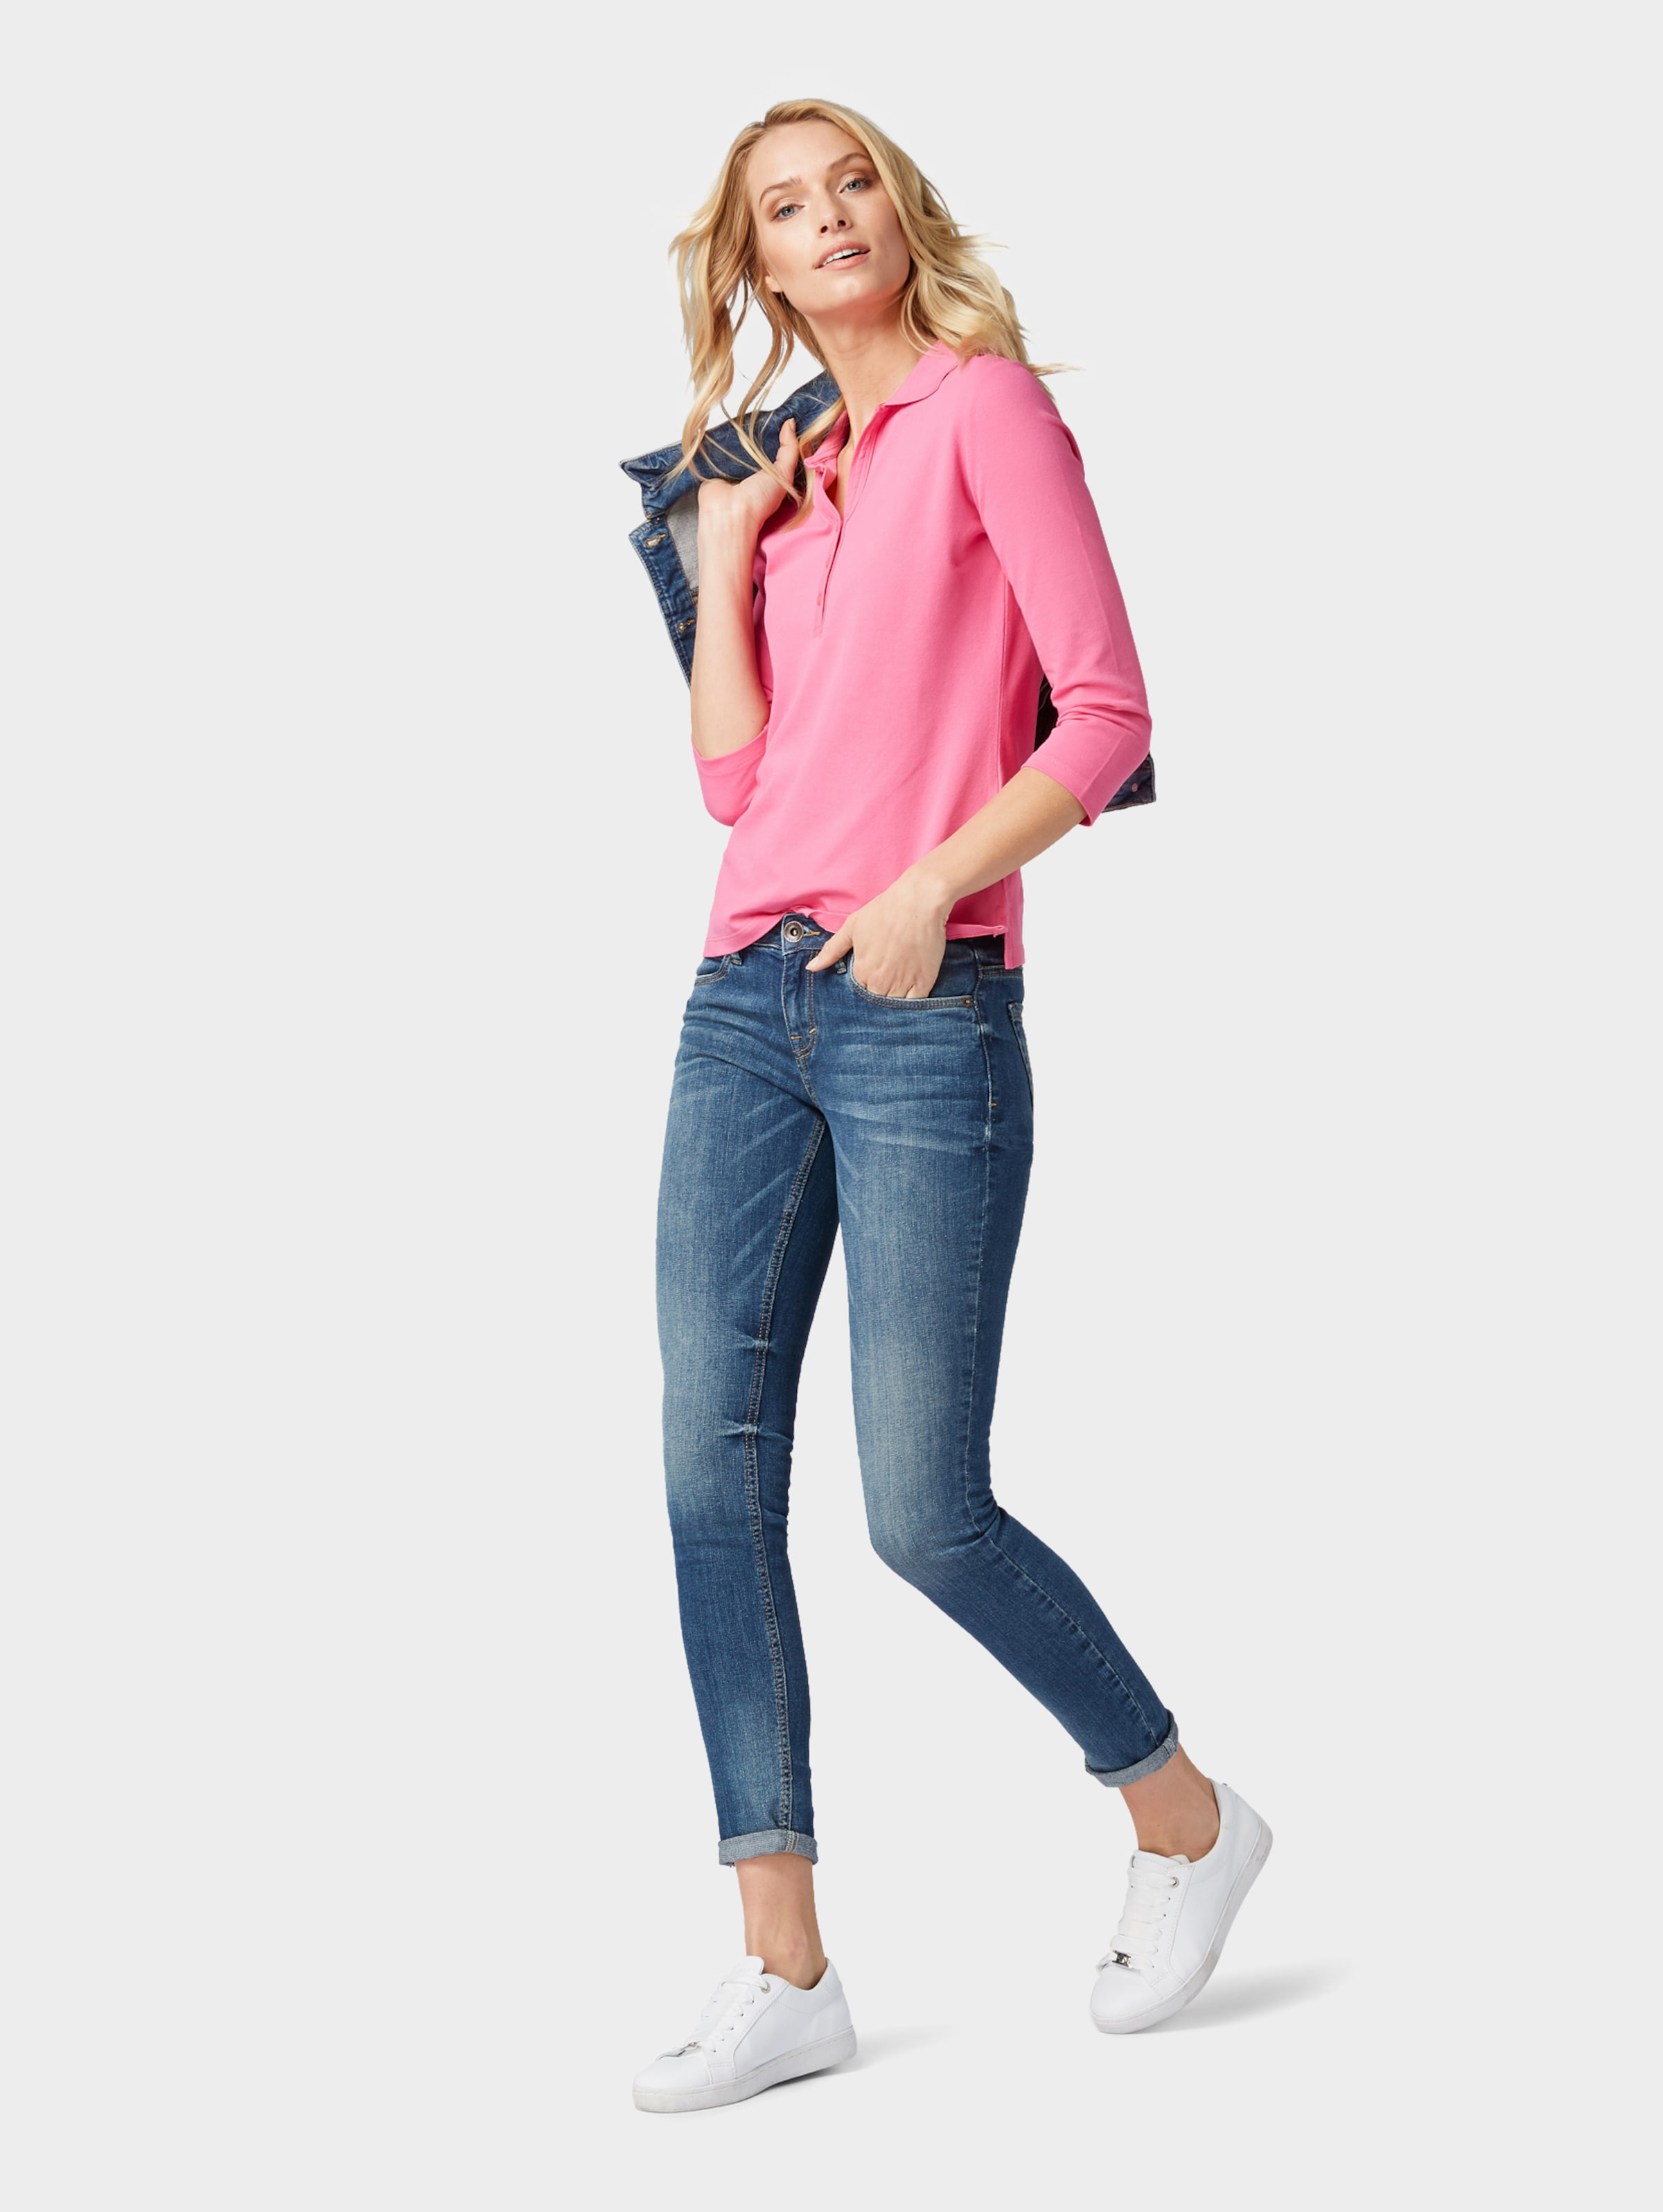 Poloshirt Tom Tailor Pink In 8nwmN0